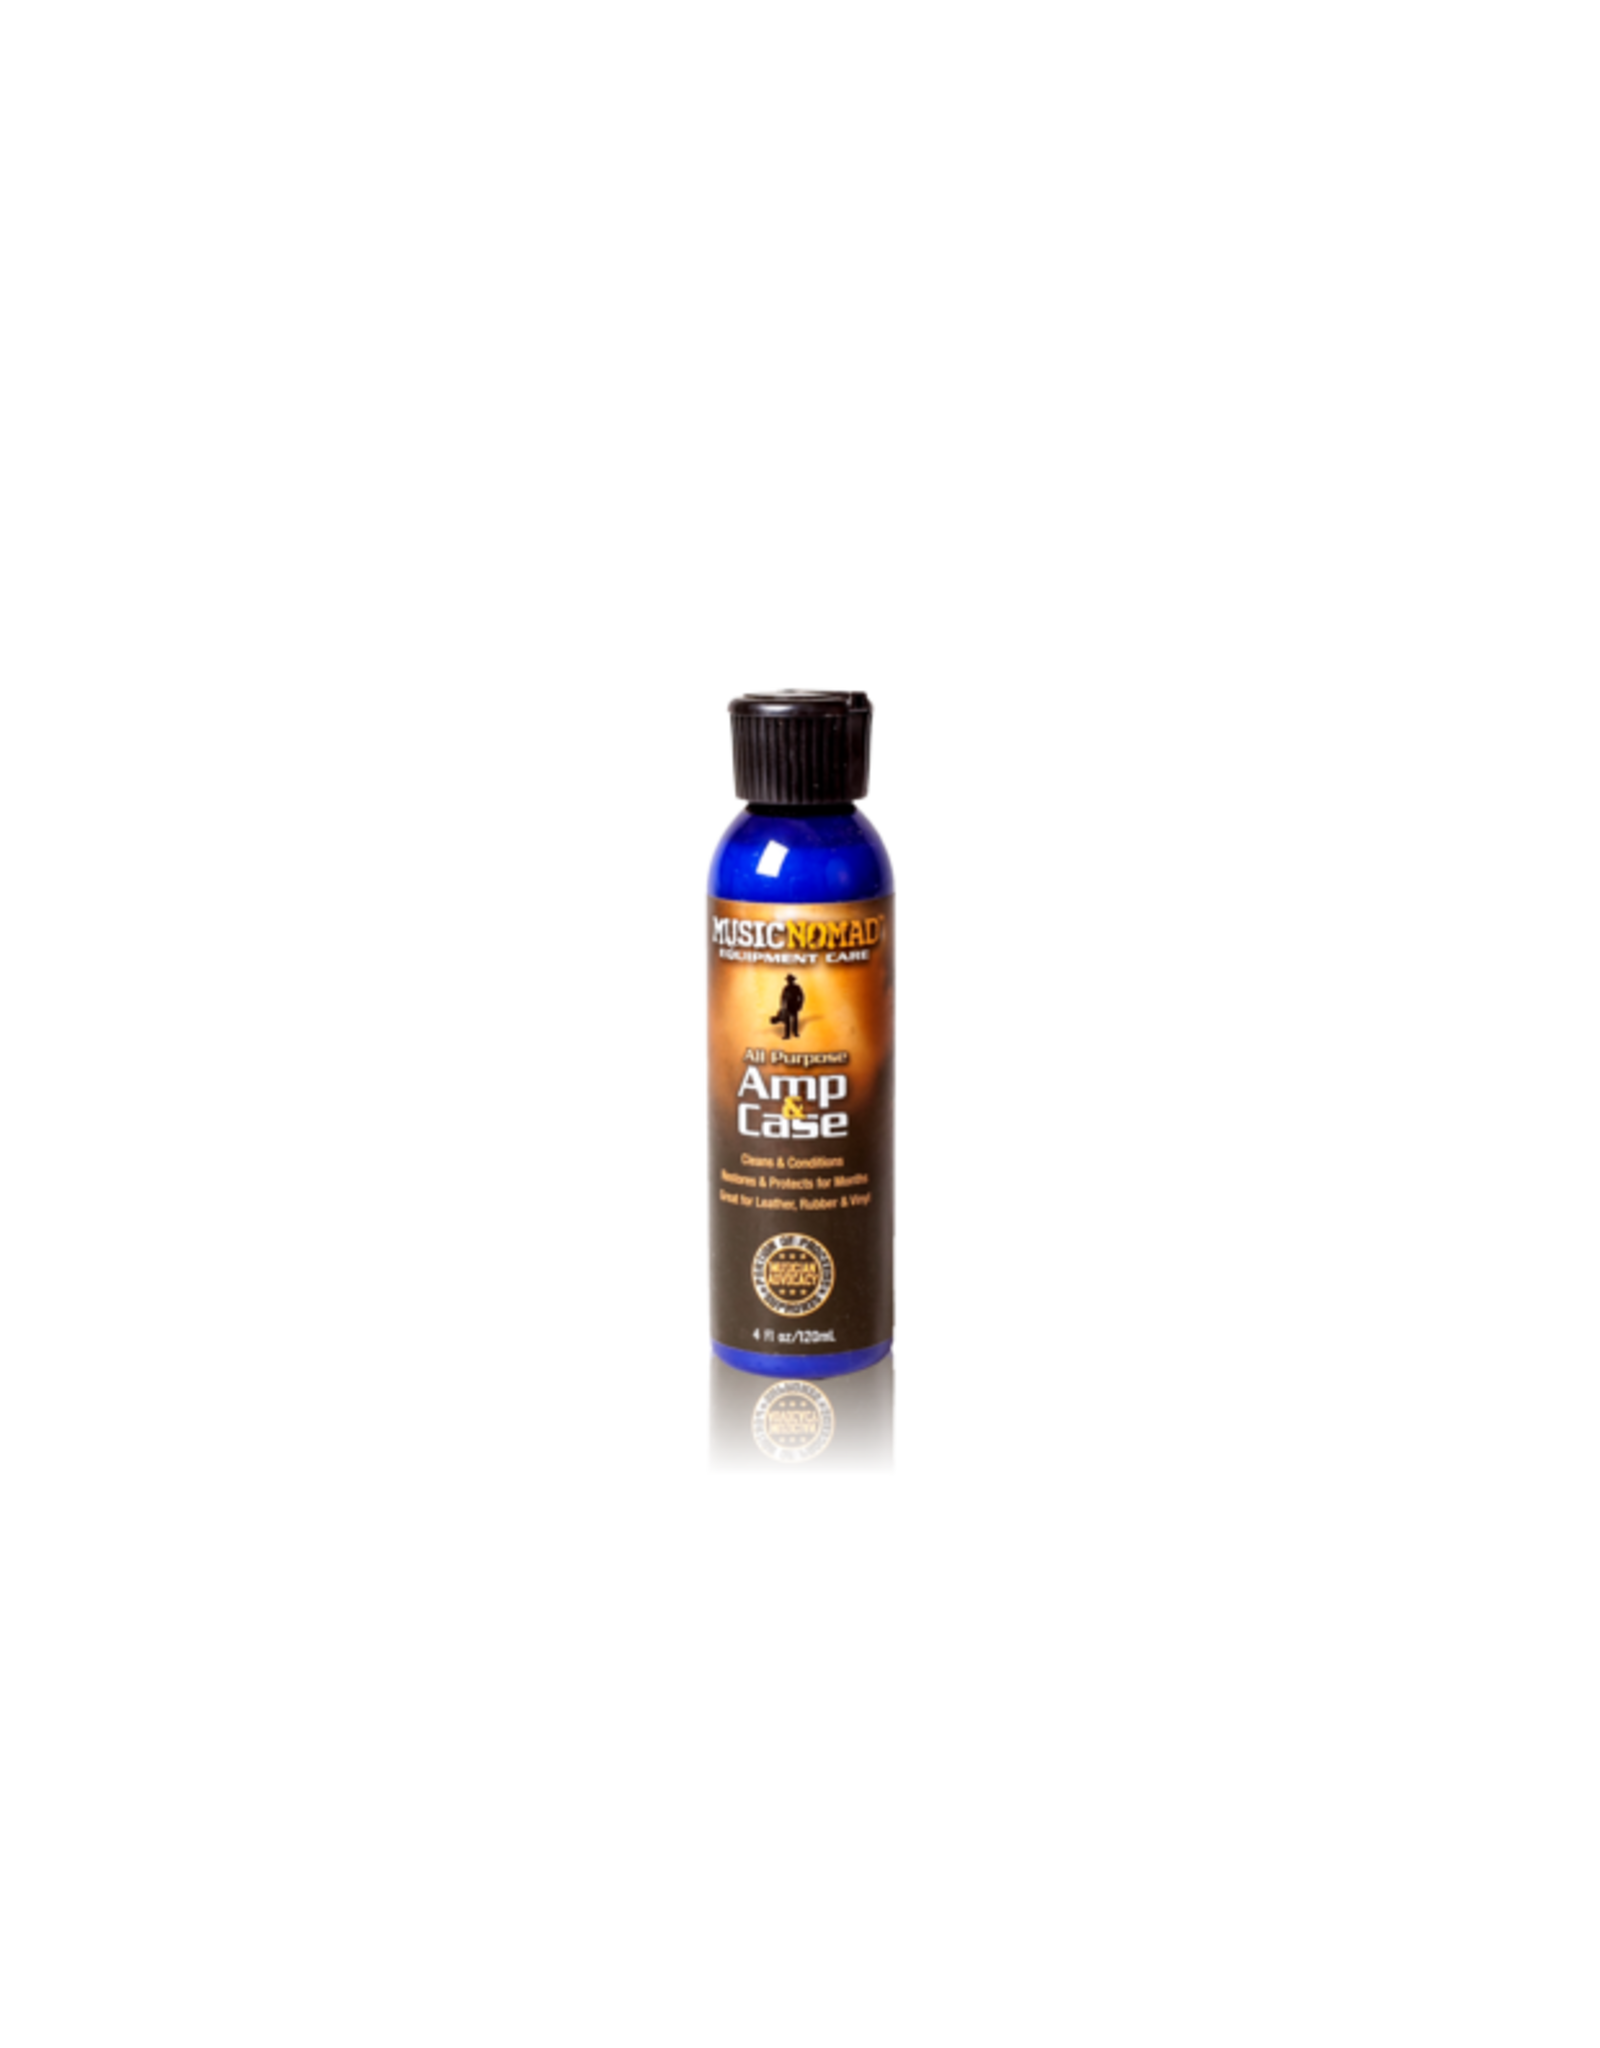 Music Nomad Music Nomad Amp & Case Cleaner and Conditioner 4 oz.